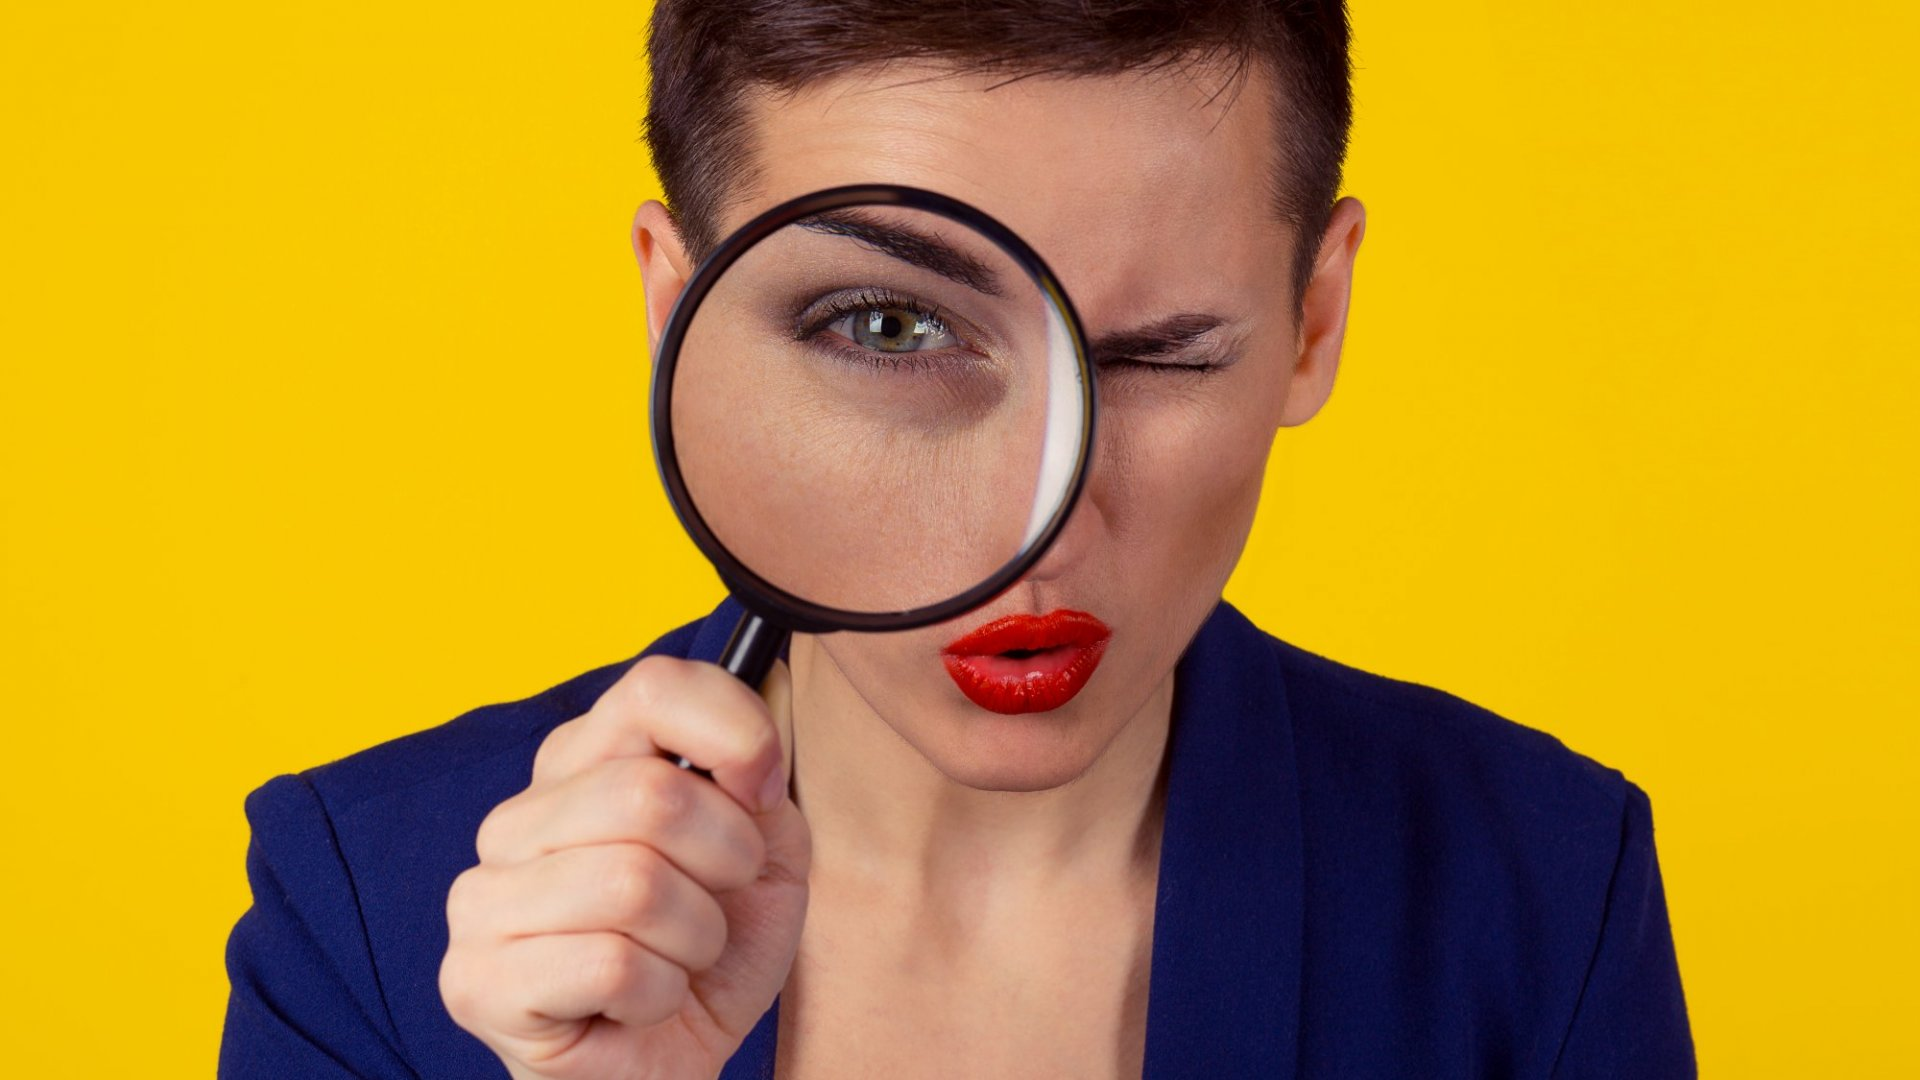 Is The Hiring Manager a Micromanager? 1 Question Will Reveal the Truth